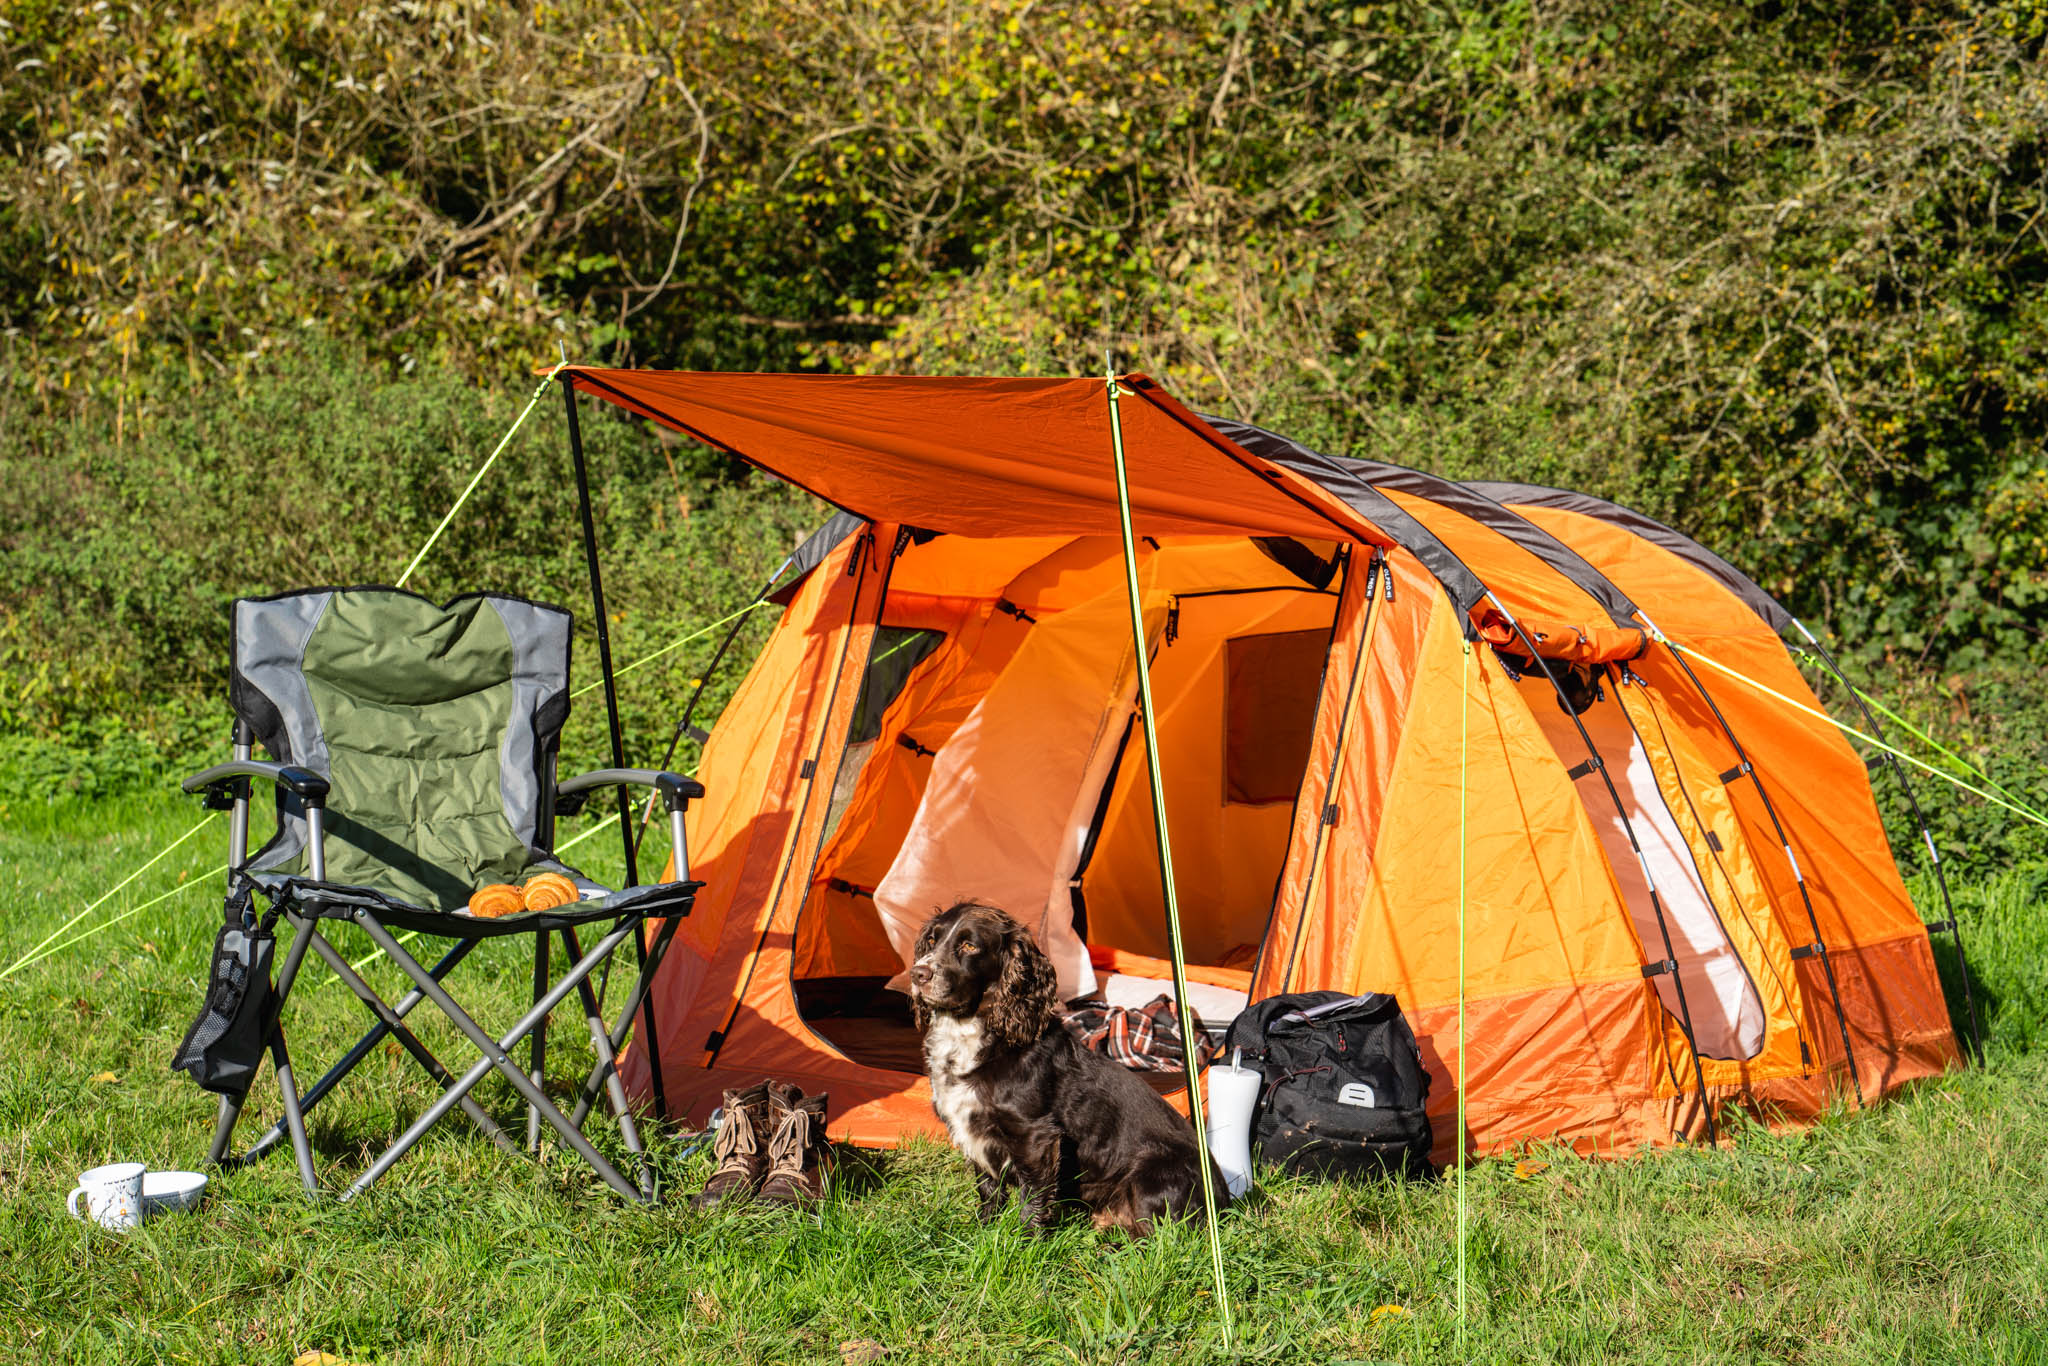 orange Olpro tent with dog and camping chair